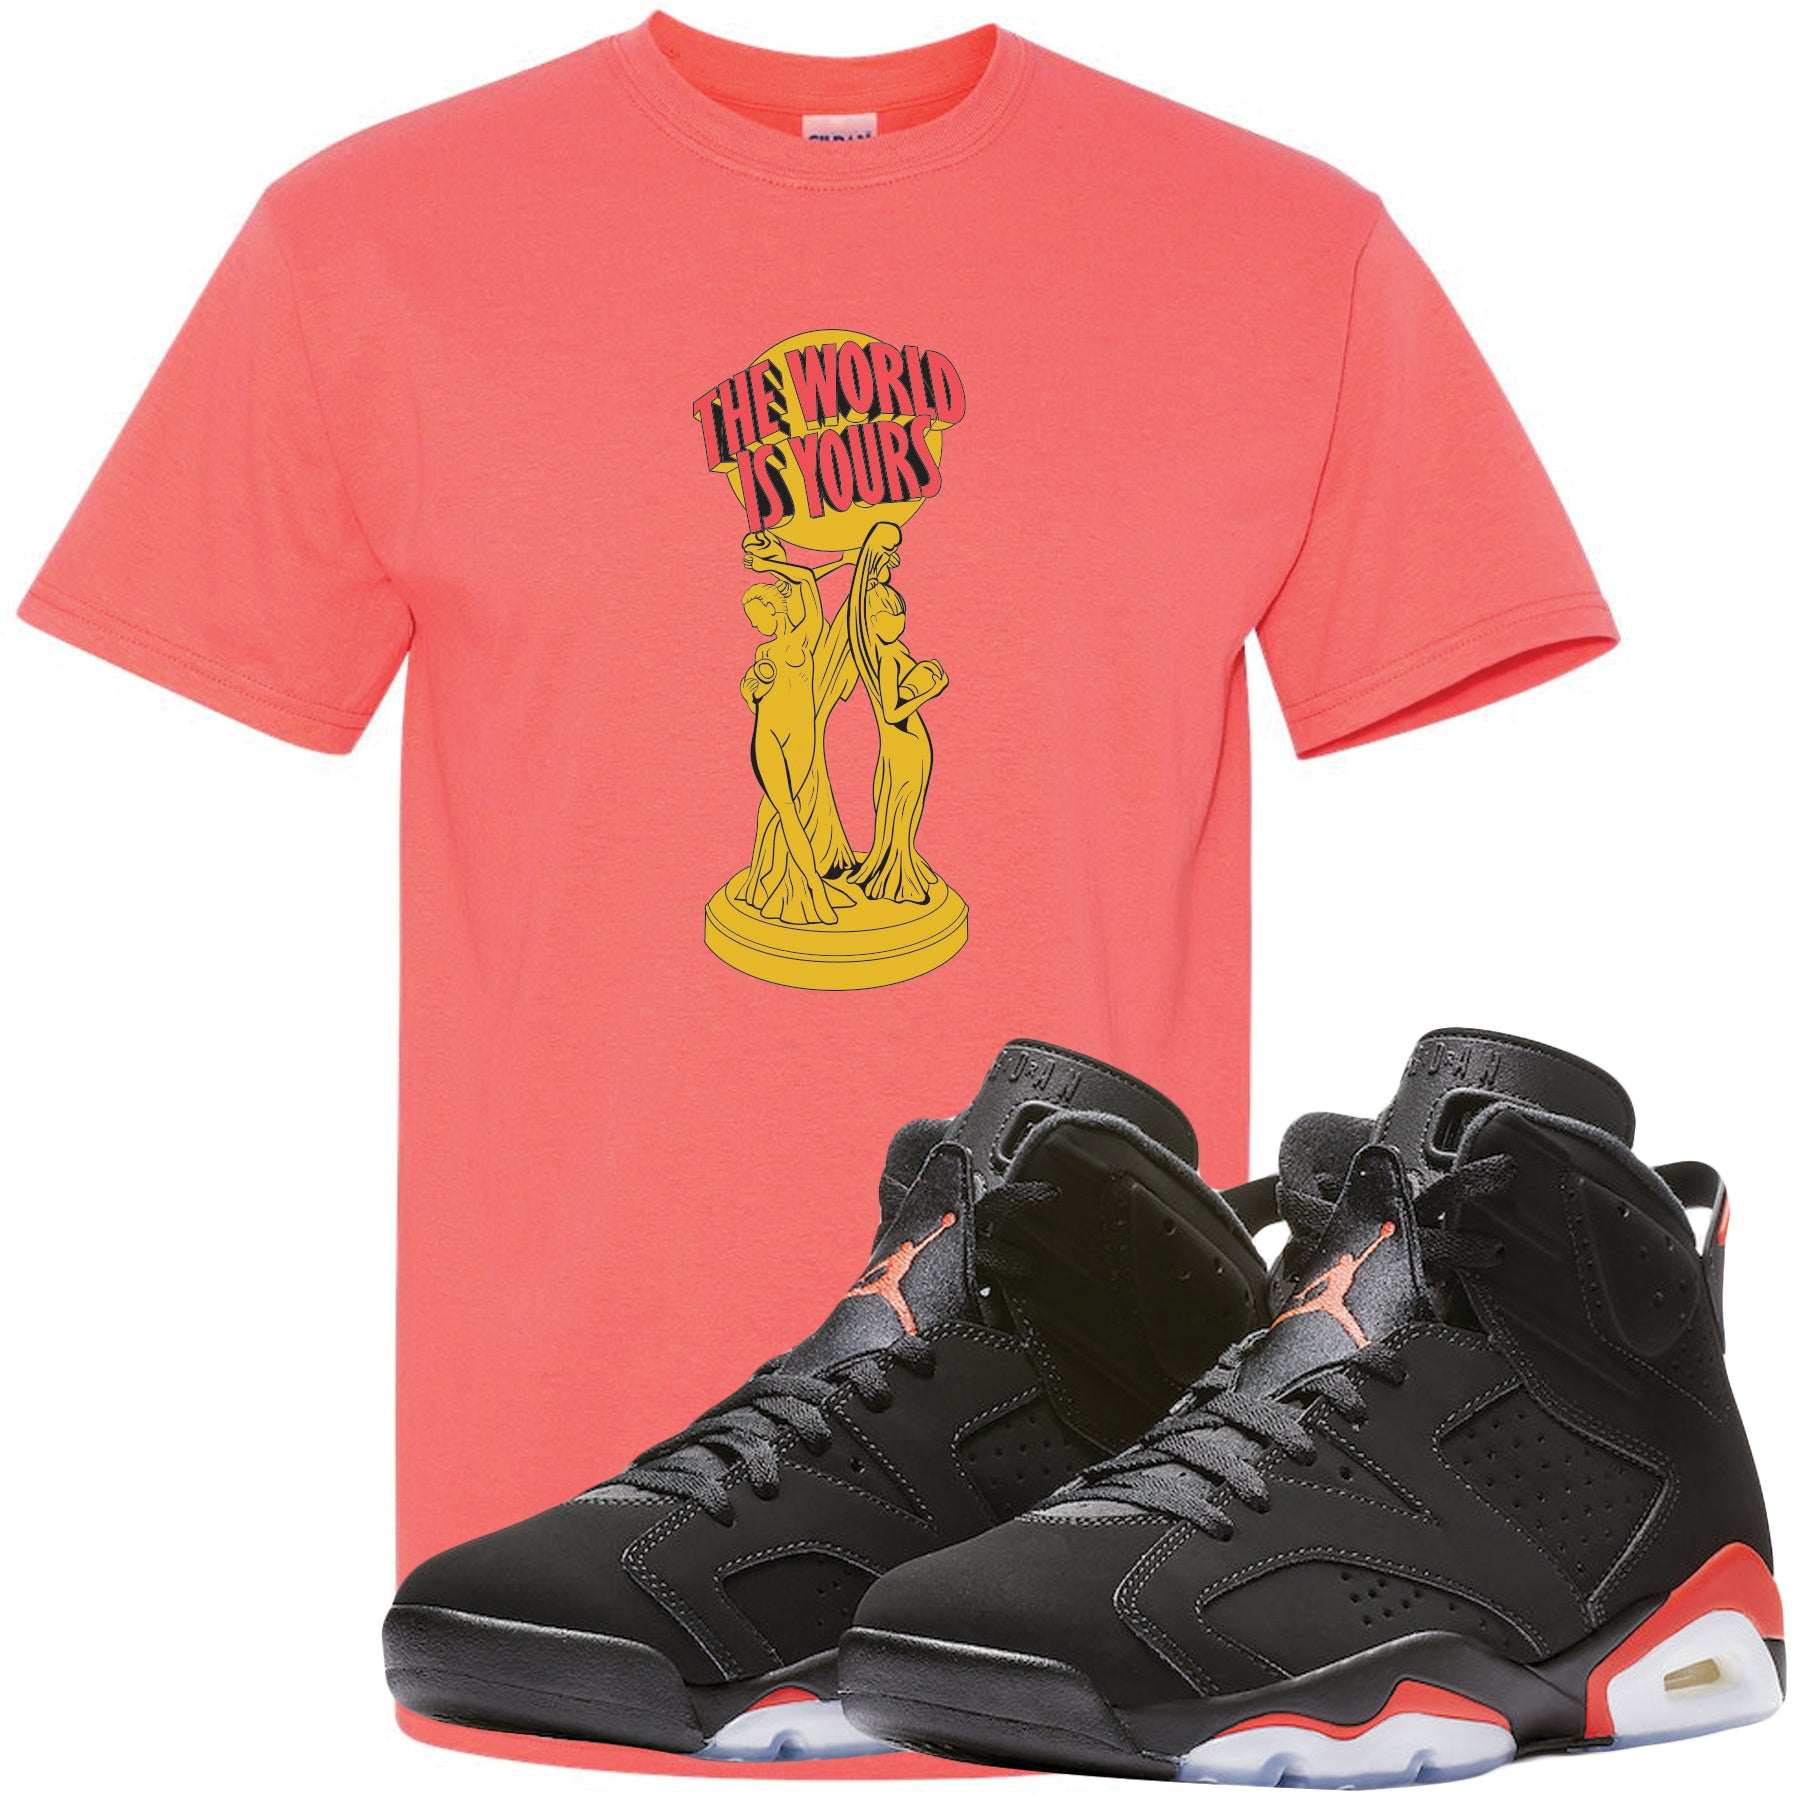 Jordan 6 Infrared Sneaker Matching The World Is Yours Infrared T Shirt